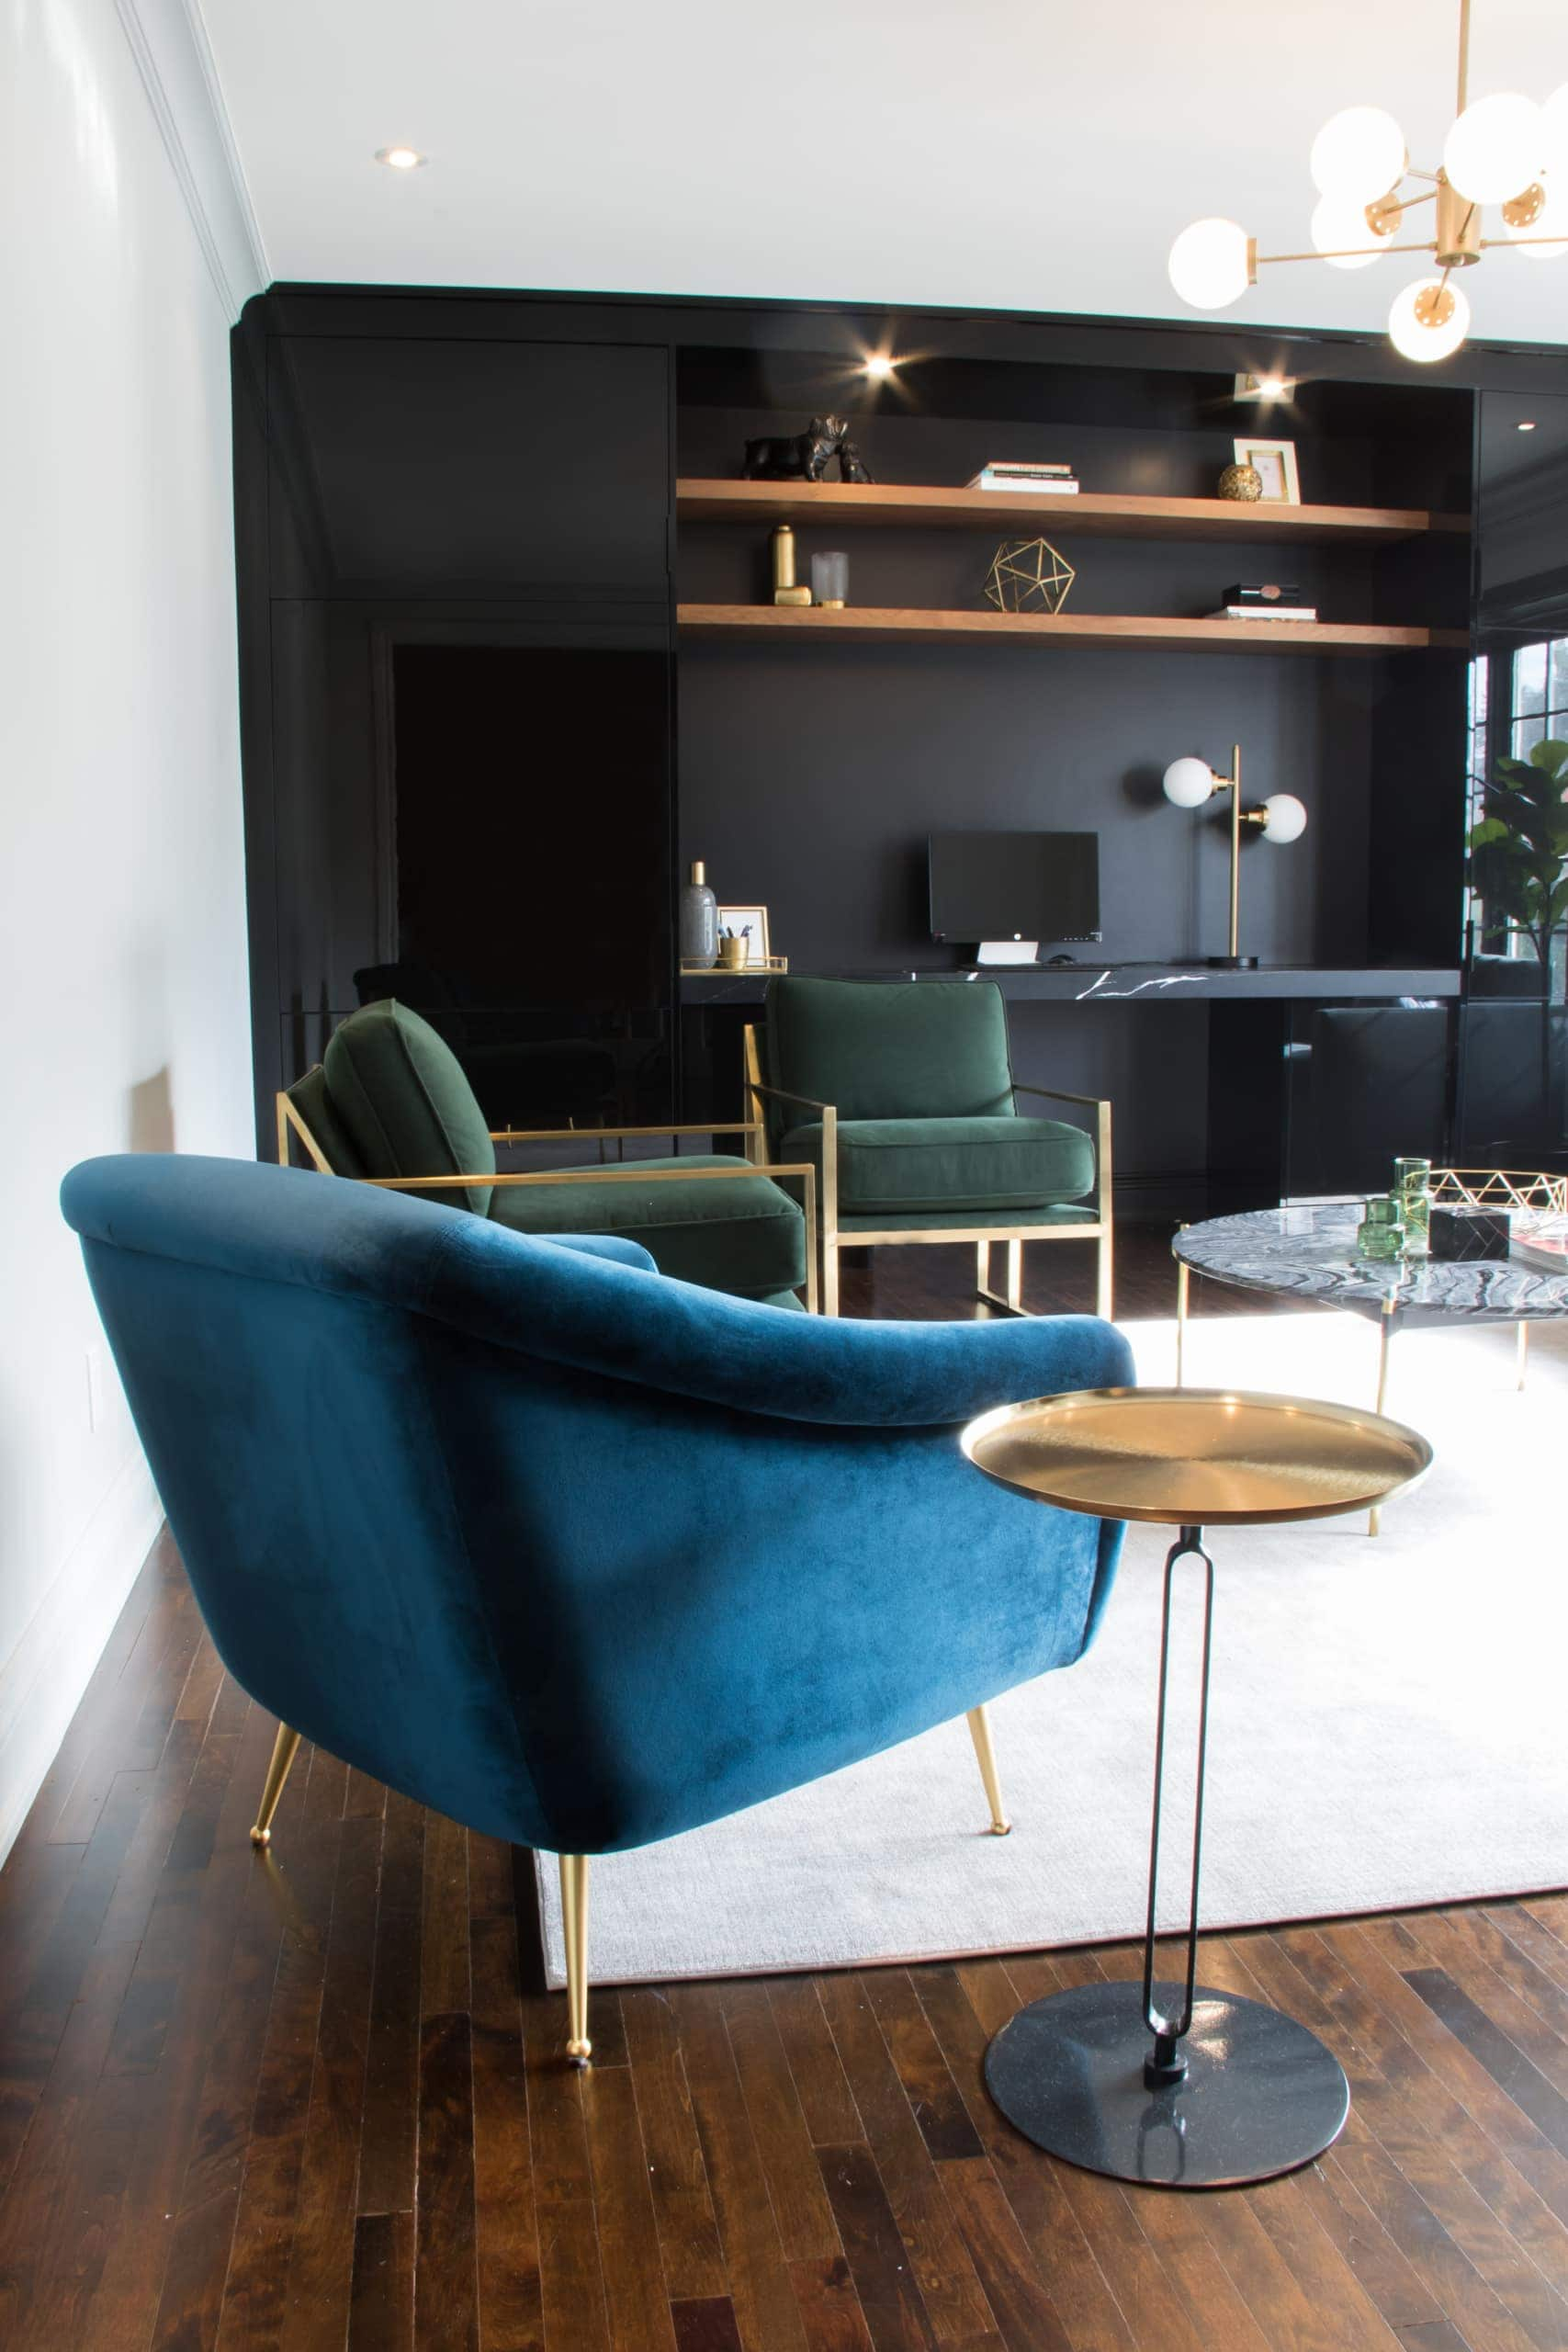 Blue chair inside office space